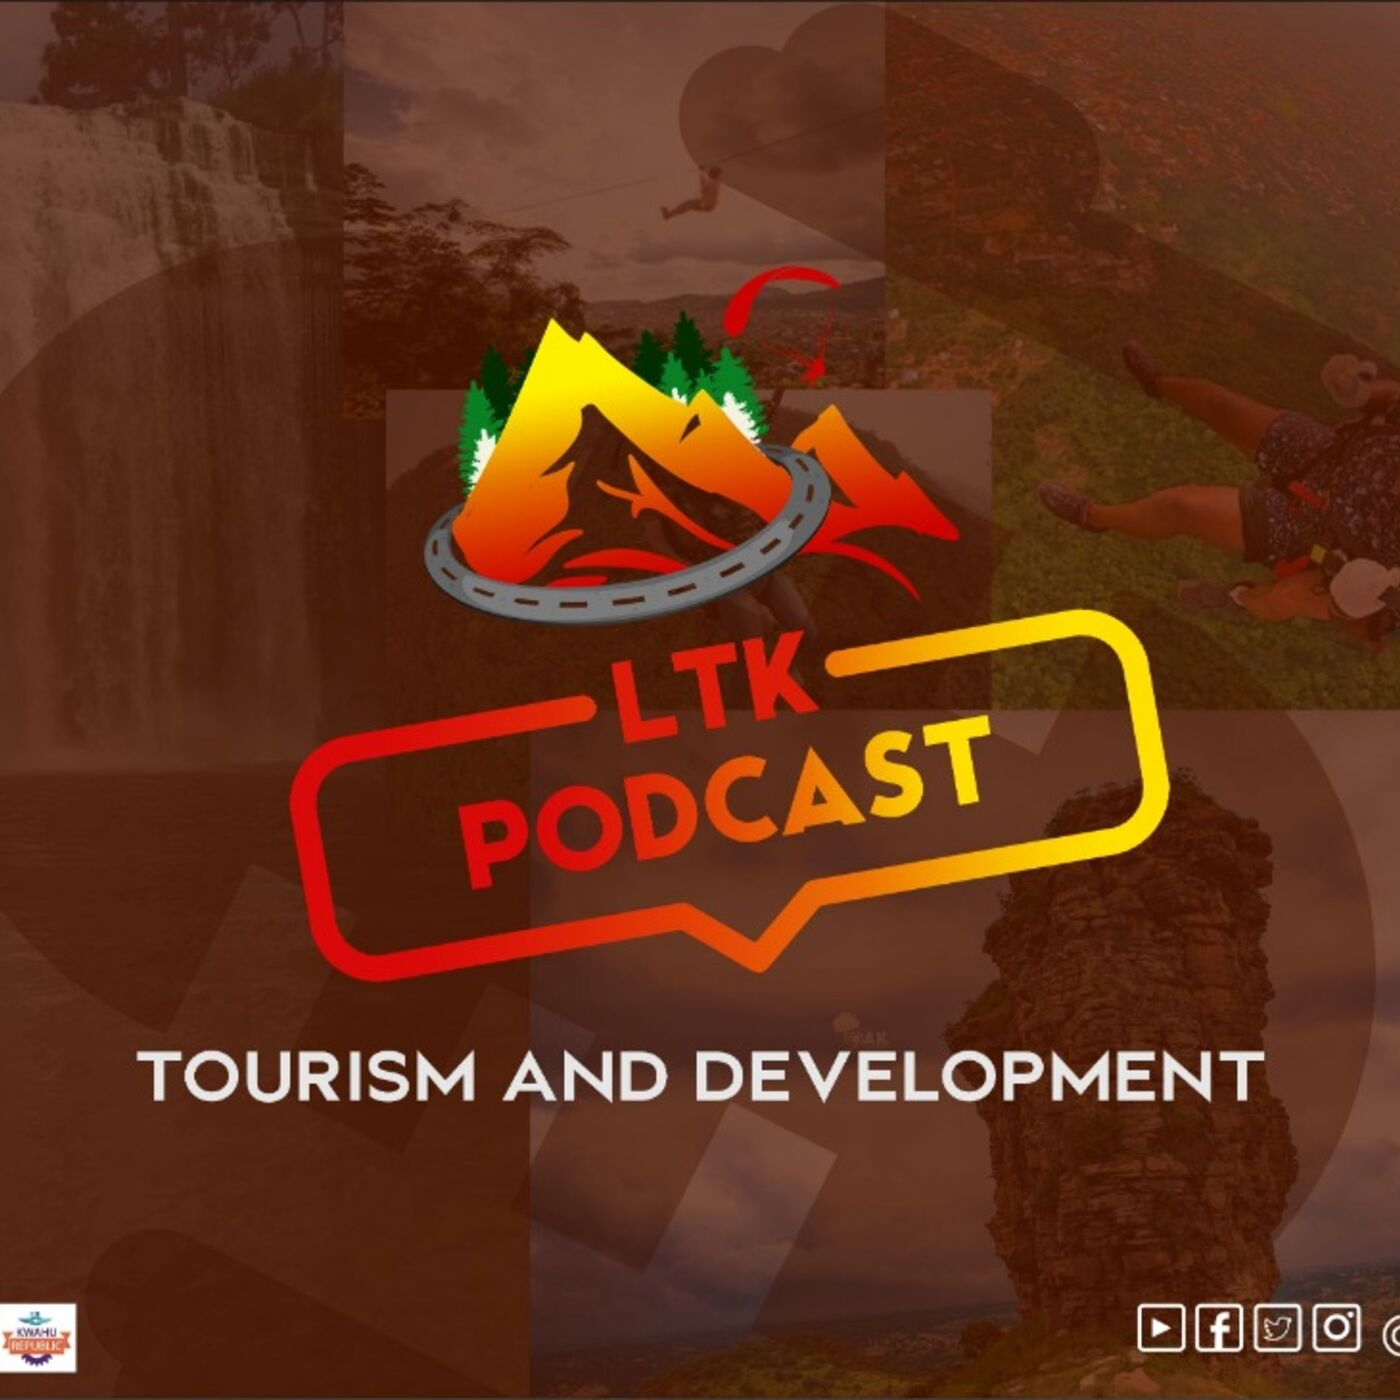 Lets Tour Kwahu 's Podcast podcast